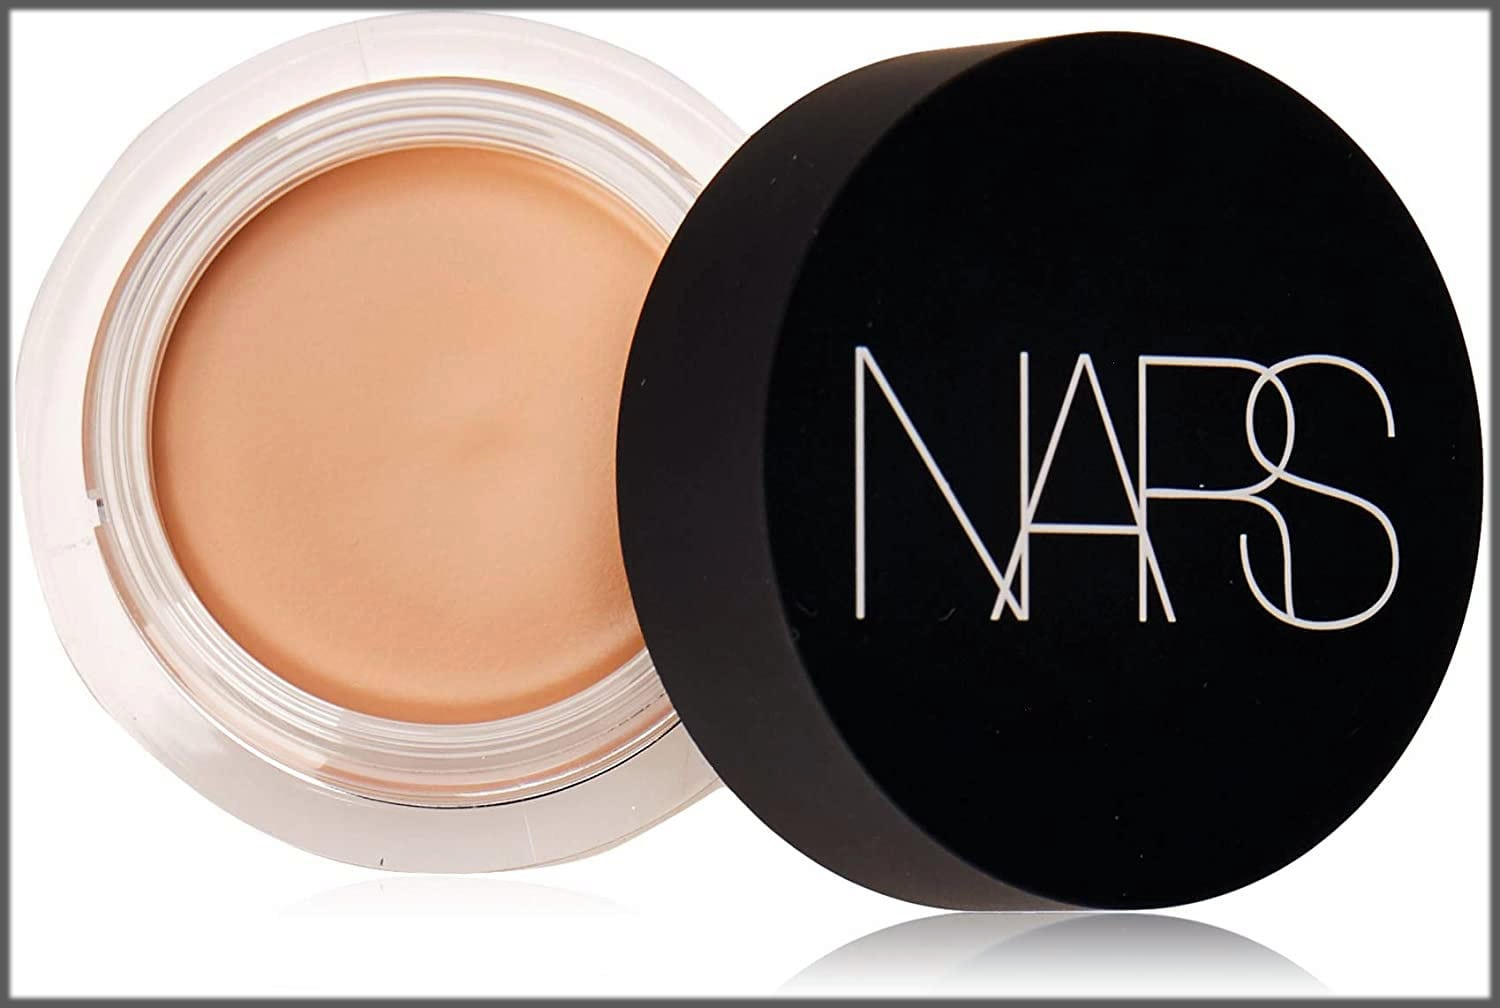 NARS soft matte concealer for dry skin